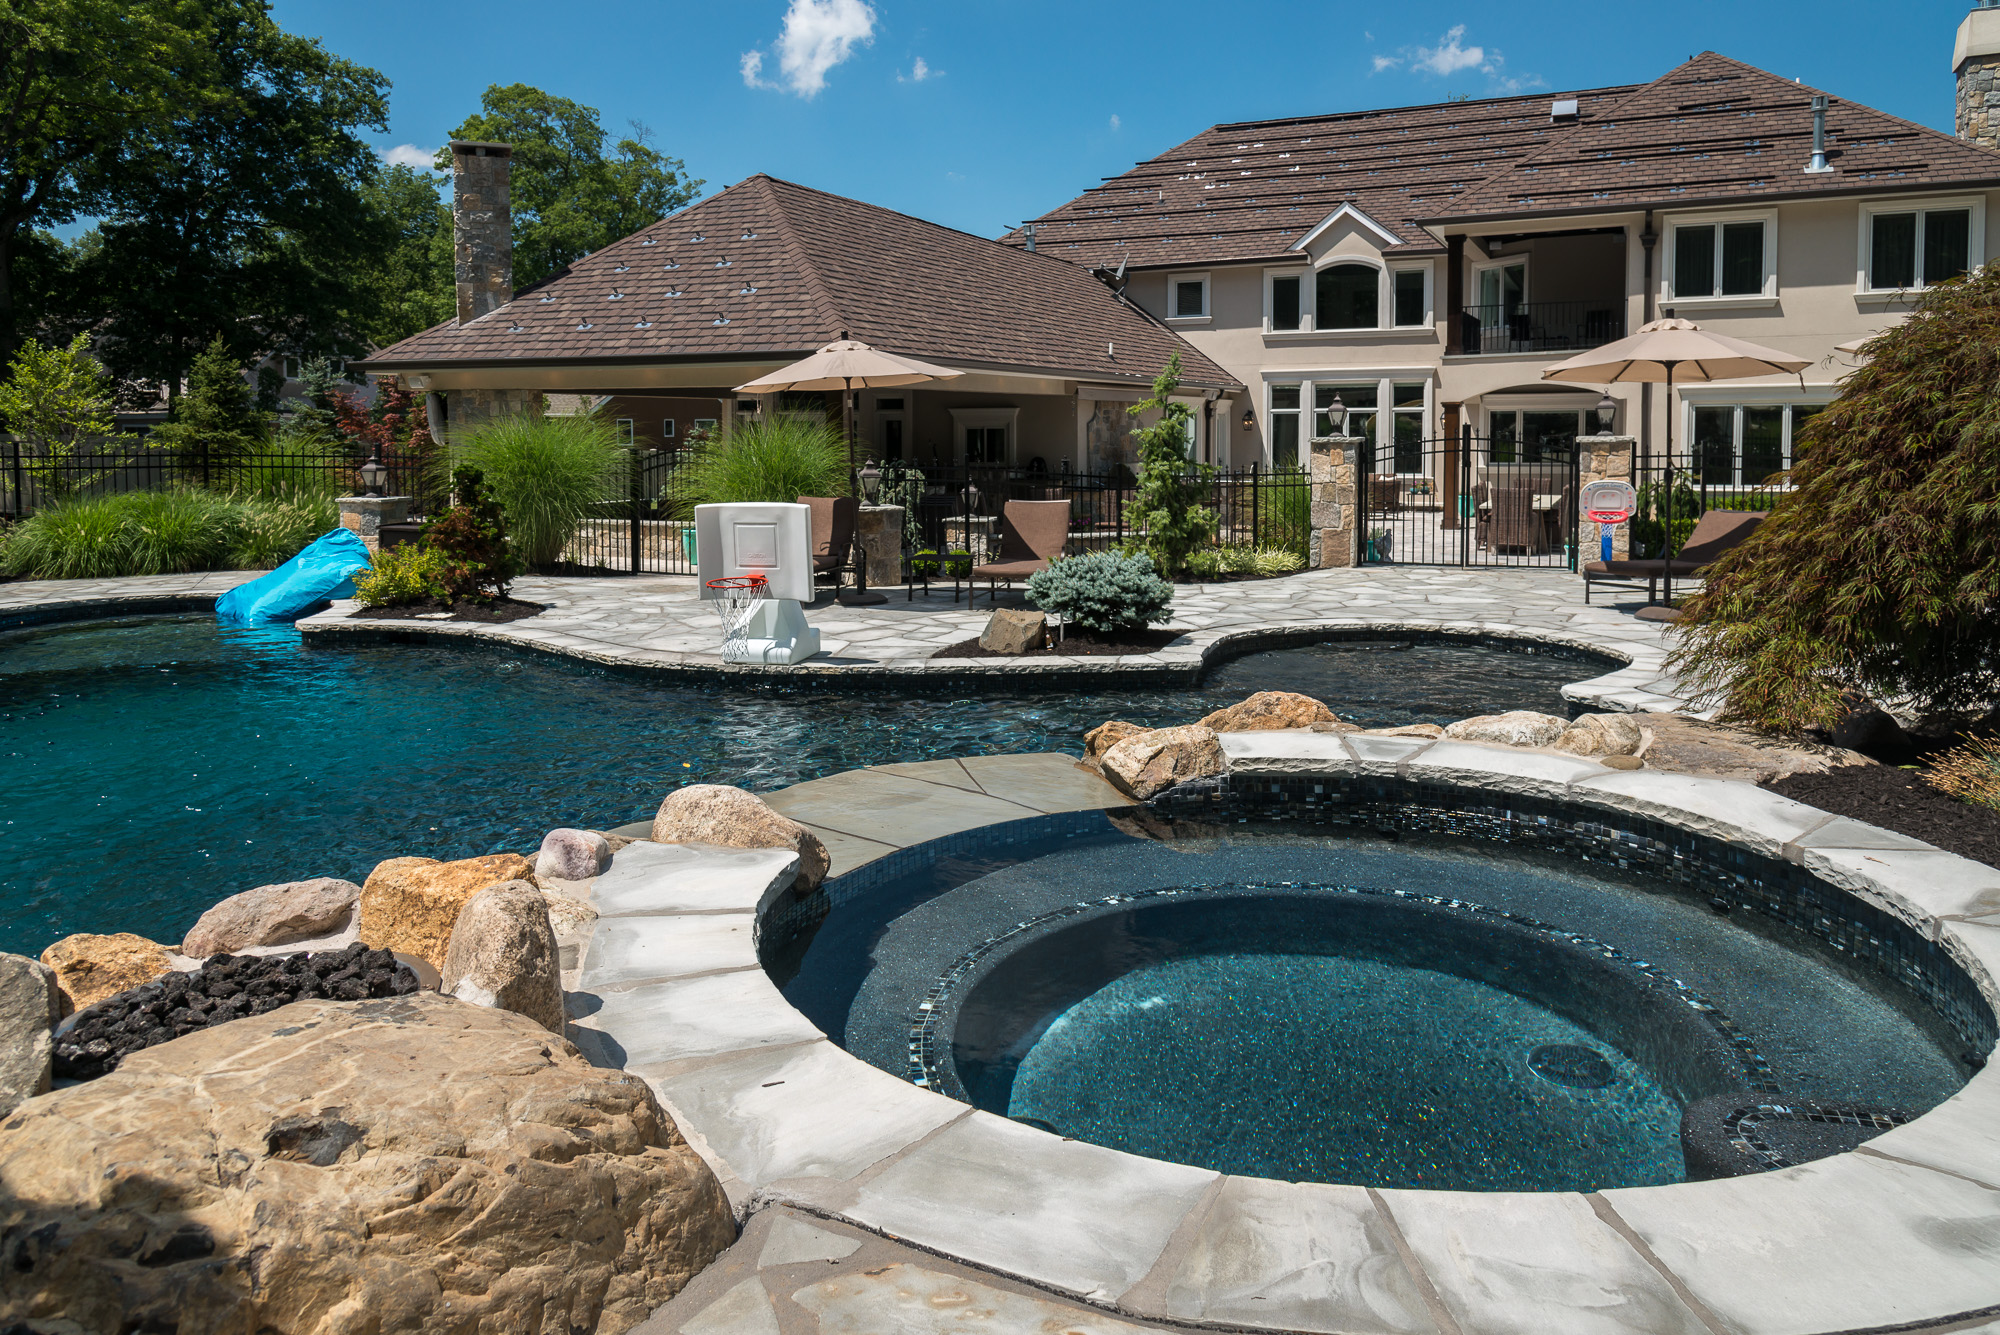 Livingston nj custom inground swimming pool design for Custom swimming pool designs